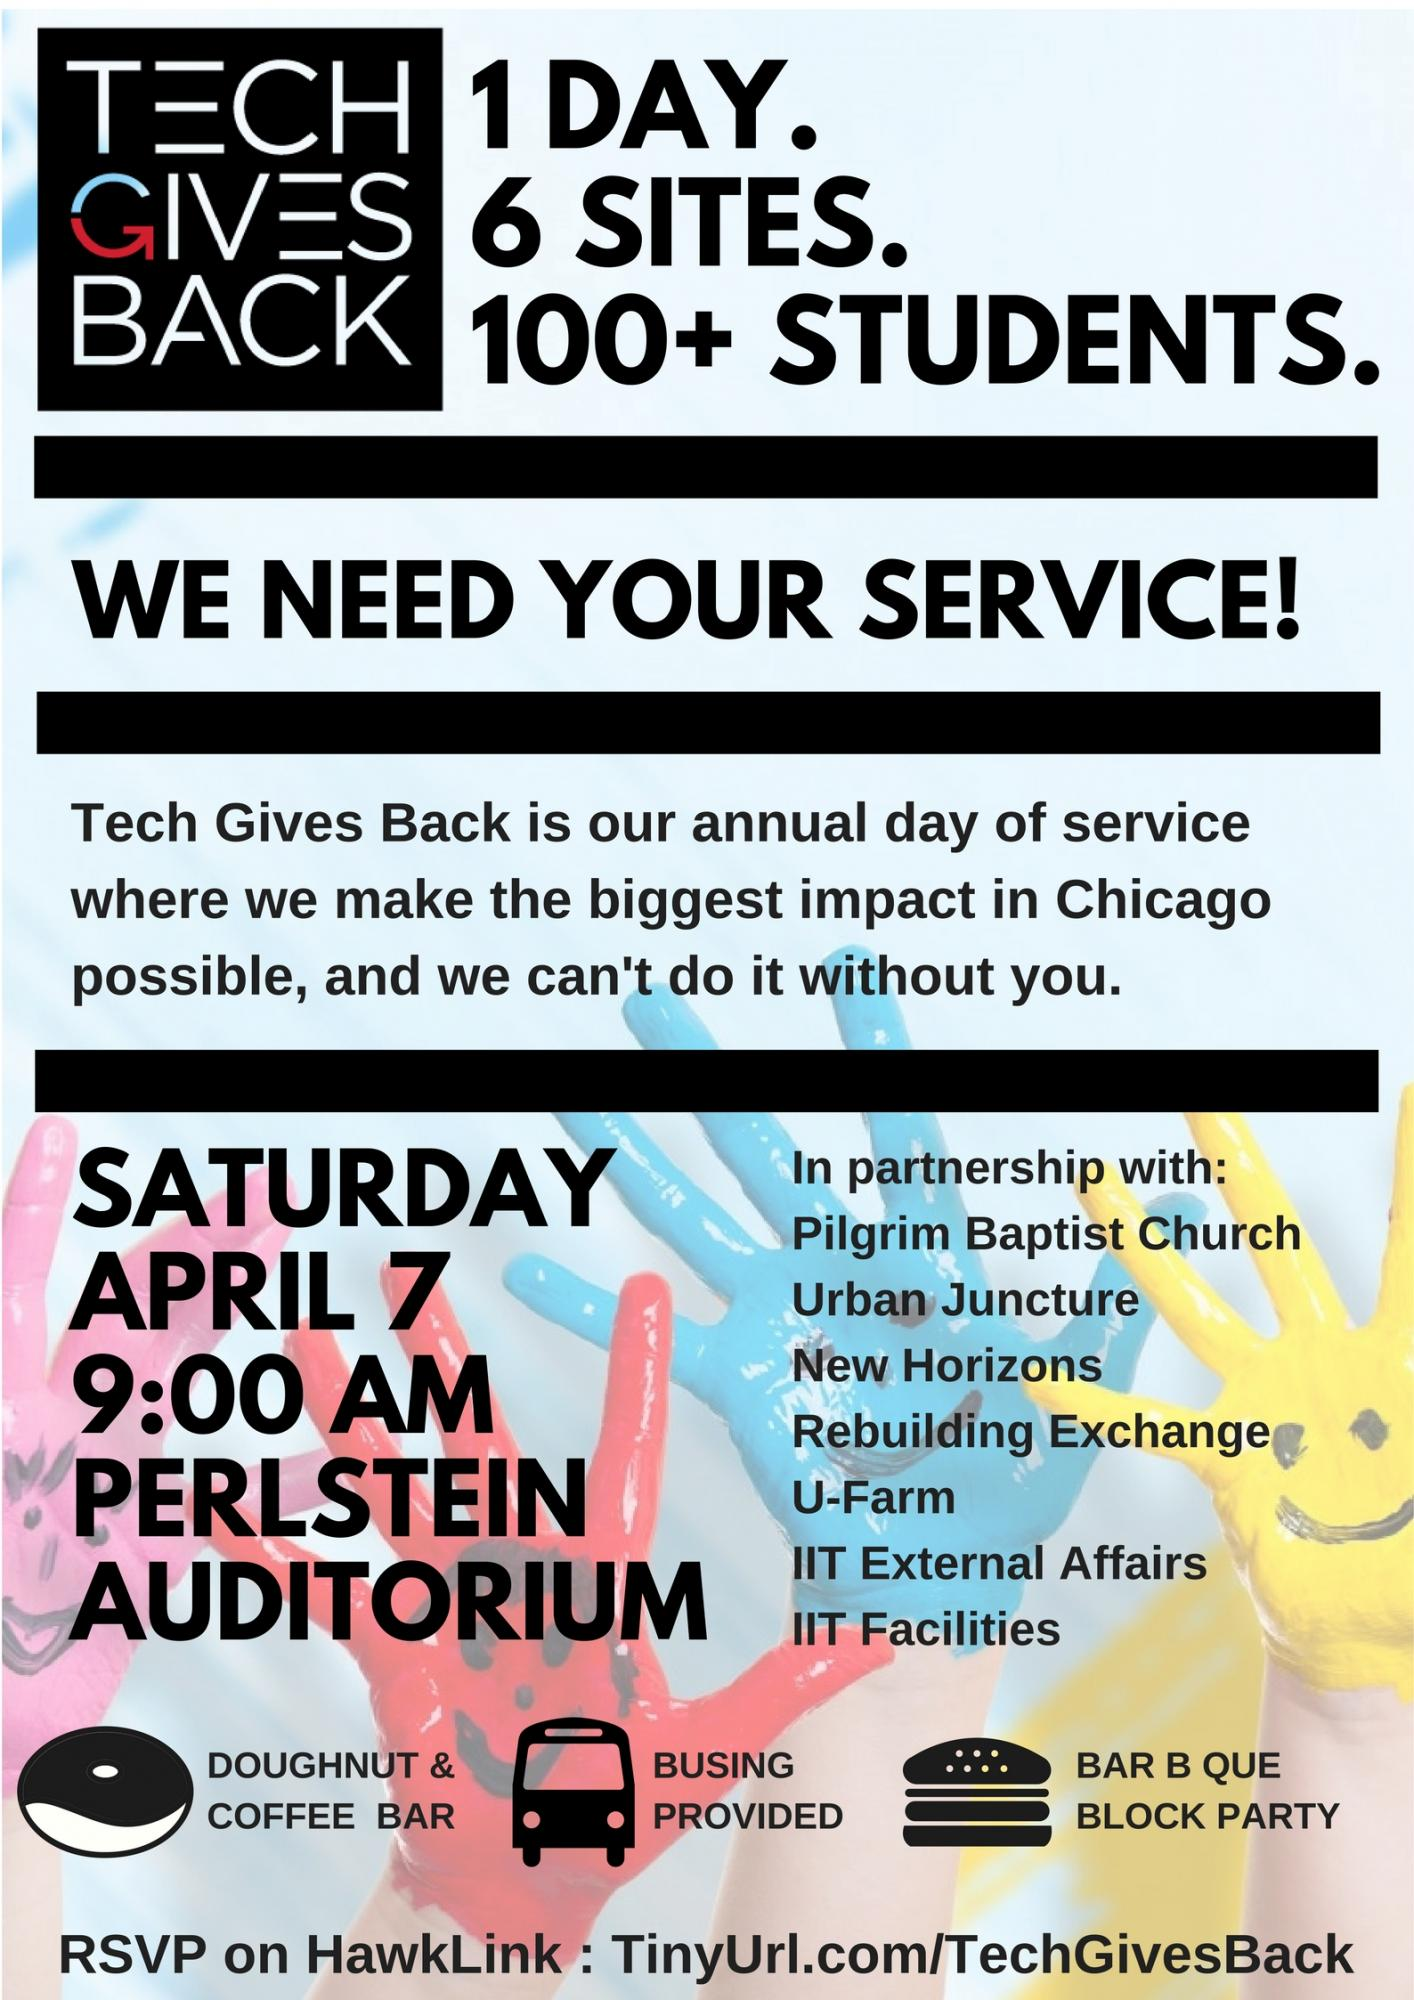 A flyer stating 'Tech Gives Back. 1 Day. 6 Sites. 100+ Students. We need your service. Tech gives back is our annual day of service where we make the biggest impact in Chicago possible, and we can't do it without you. Saturday, April 7th, 9am, Perlstein Auditorium. Doughnut and coffee bar, busing included, bar b que block part. In partnership with Pilgrim Baptist Church, Urban Juncture, New Horizons, Rebduiling Exchange, U-Farm IIT External Affairs, and IIT Facilities.